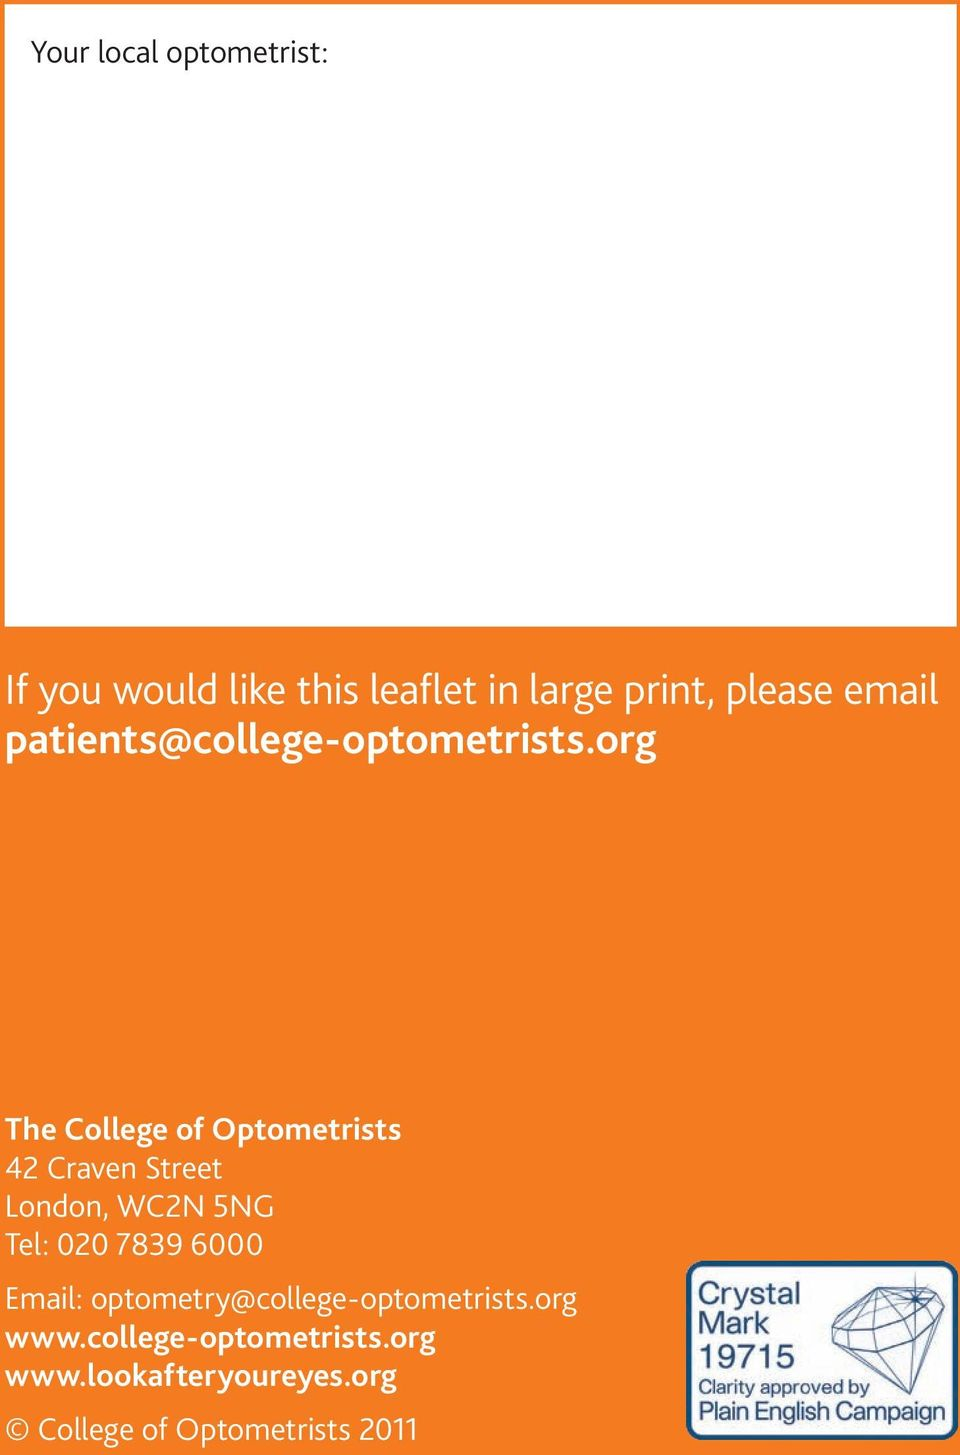 org The College of Optometrists 42 Craven Street London, WC2N 5NG Tel: 020 7839